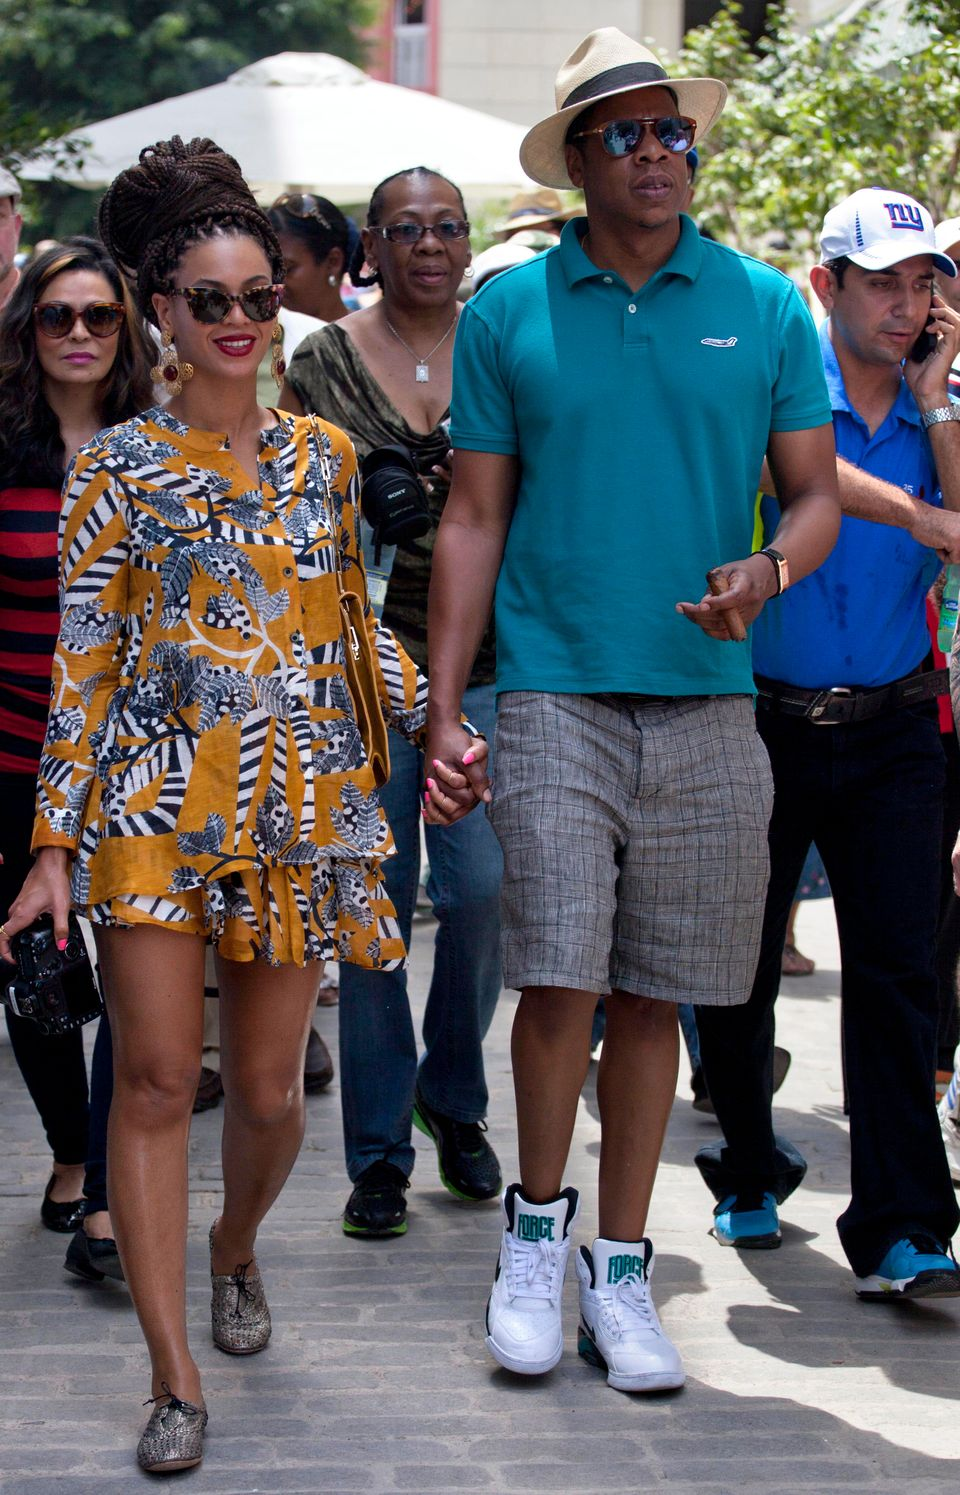 U.S. singer Beyonce and her husband, rapper Jay-Z, hold hands as they tour Old Havana, Cuba, Thursday, April 4, 2013. R&B's p